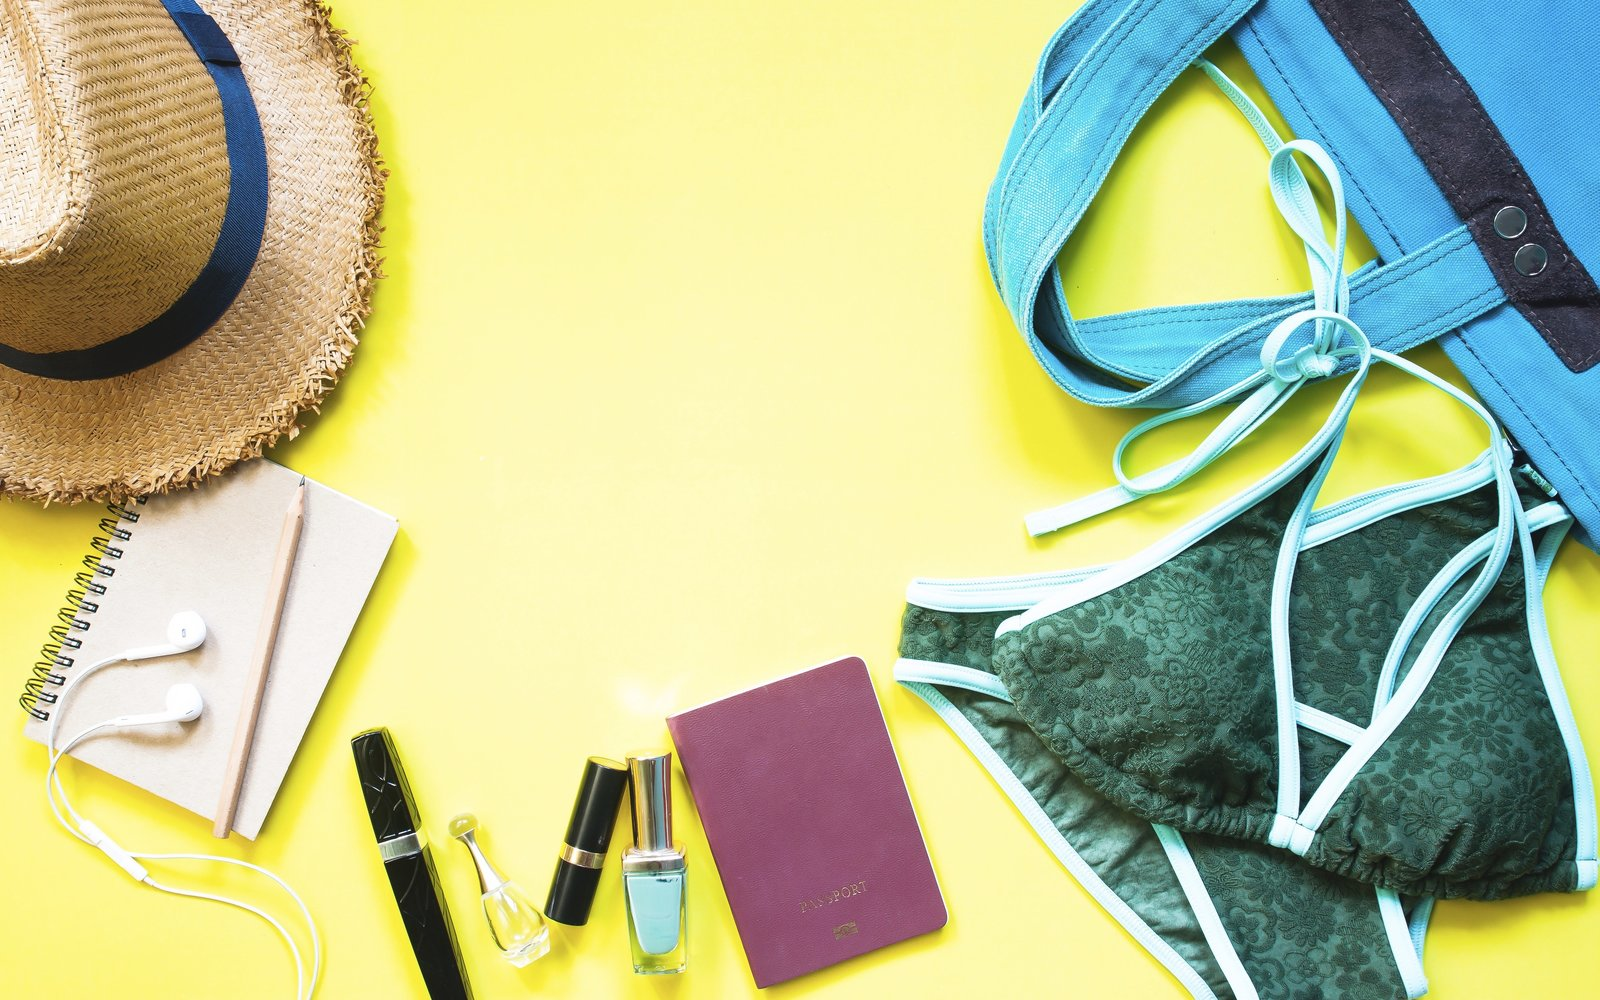 Tout: 13 Clear Travel Makeup Bags That Make Getting Through Airport Security a Breeze